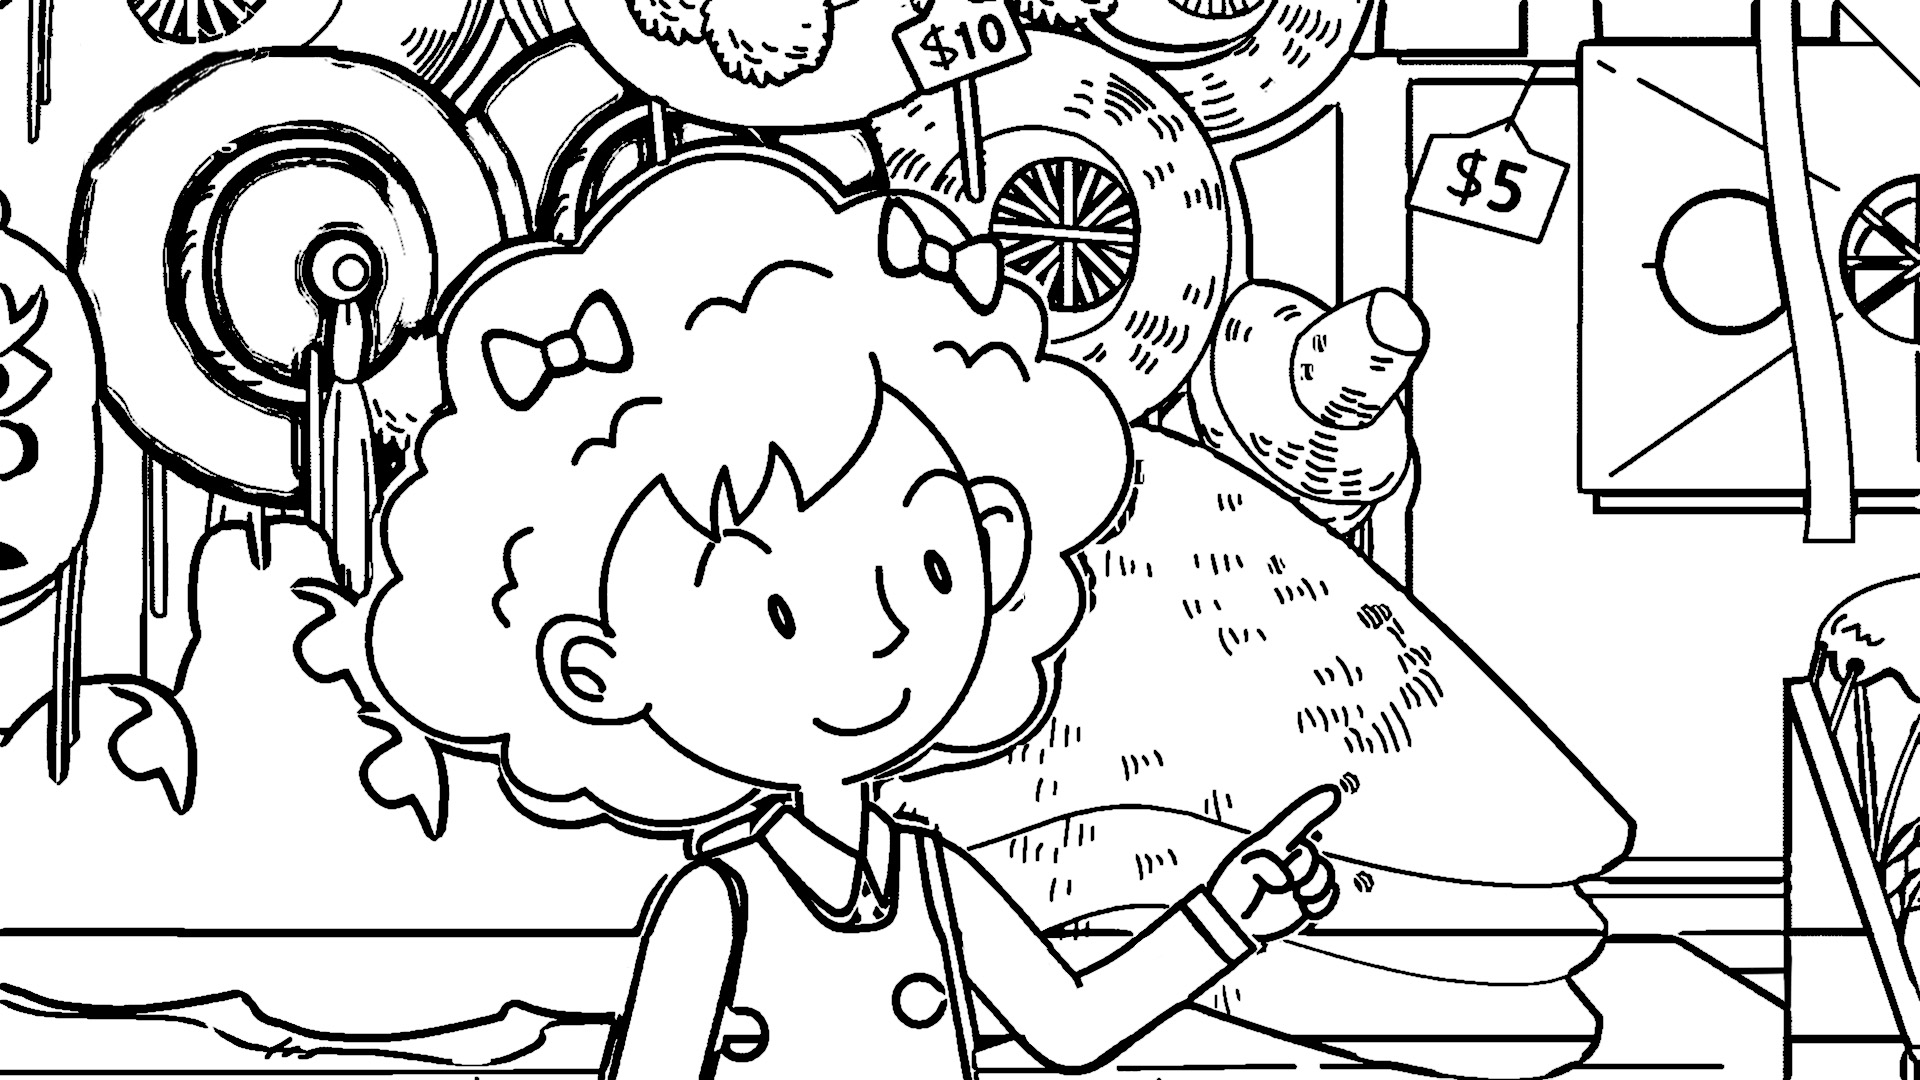 Speaking Cartoon Kids Coloring Page 67